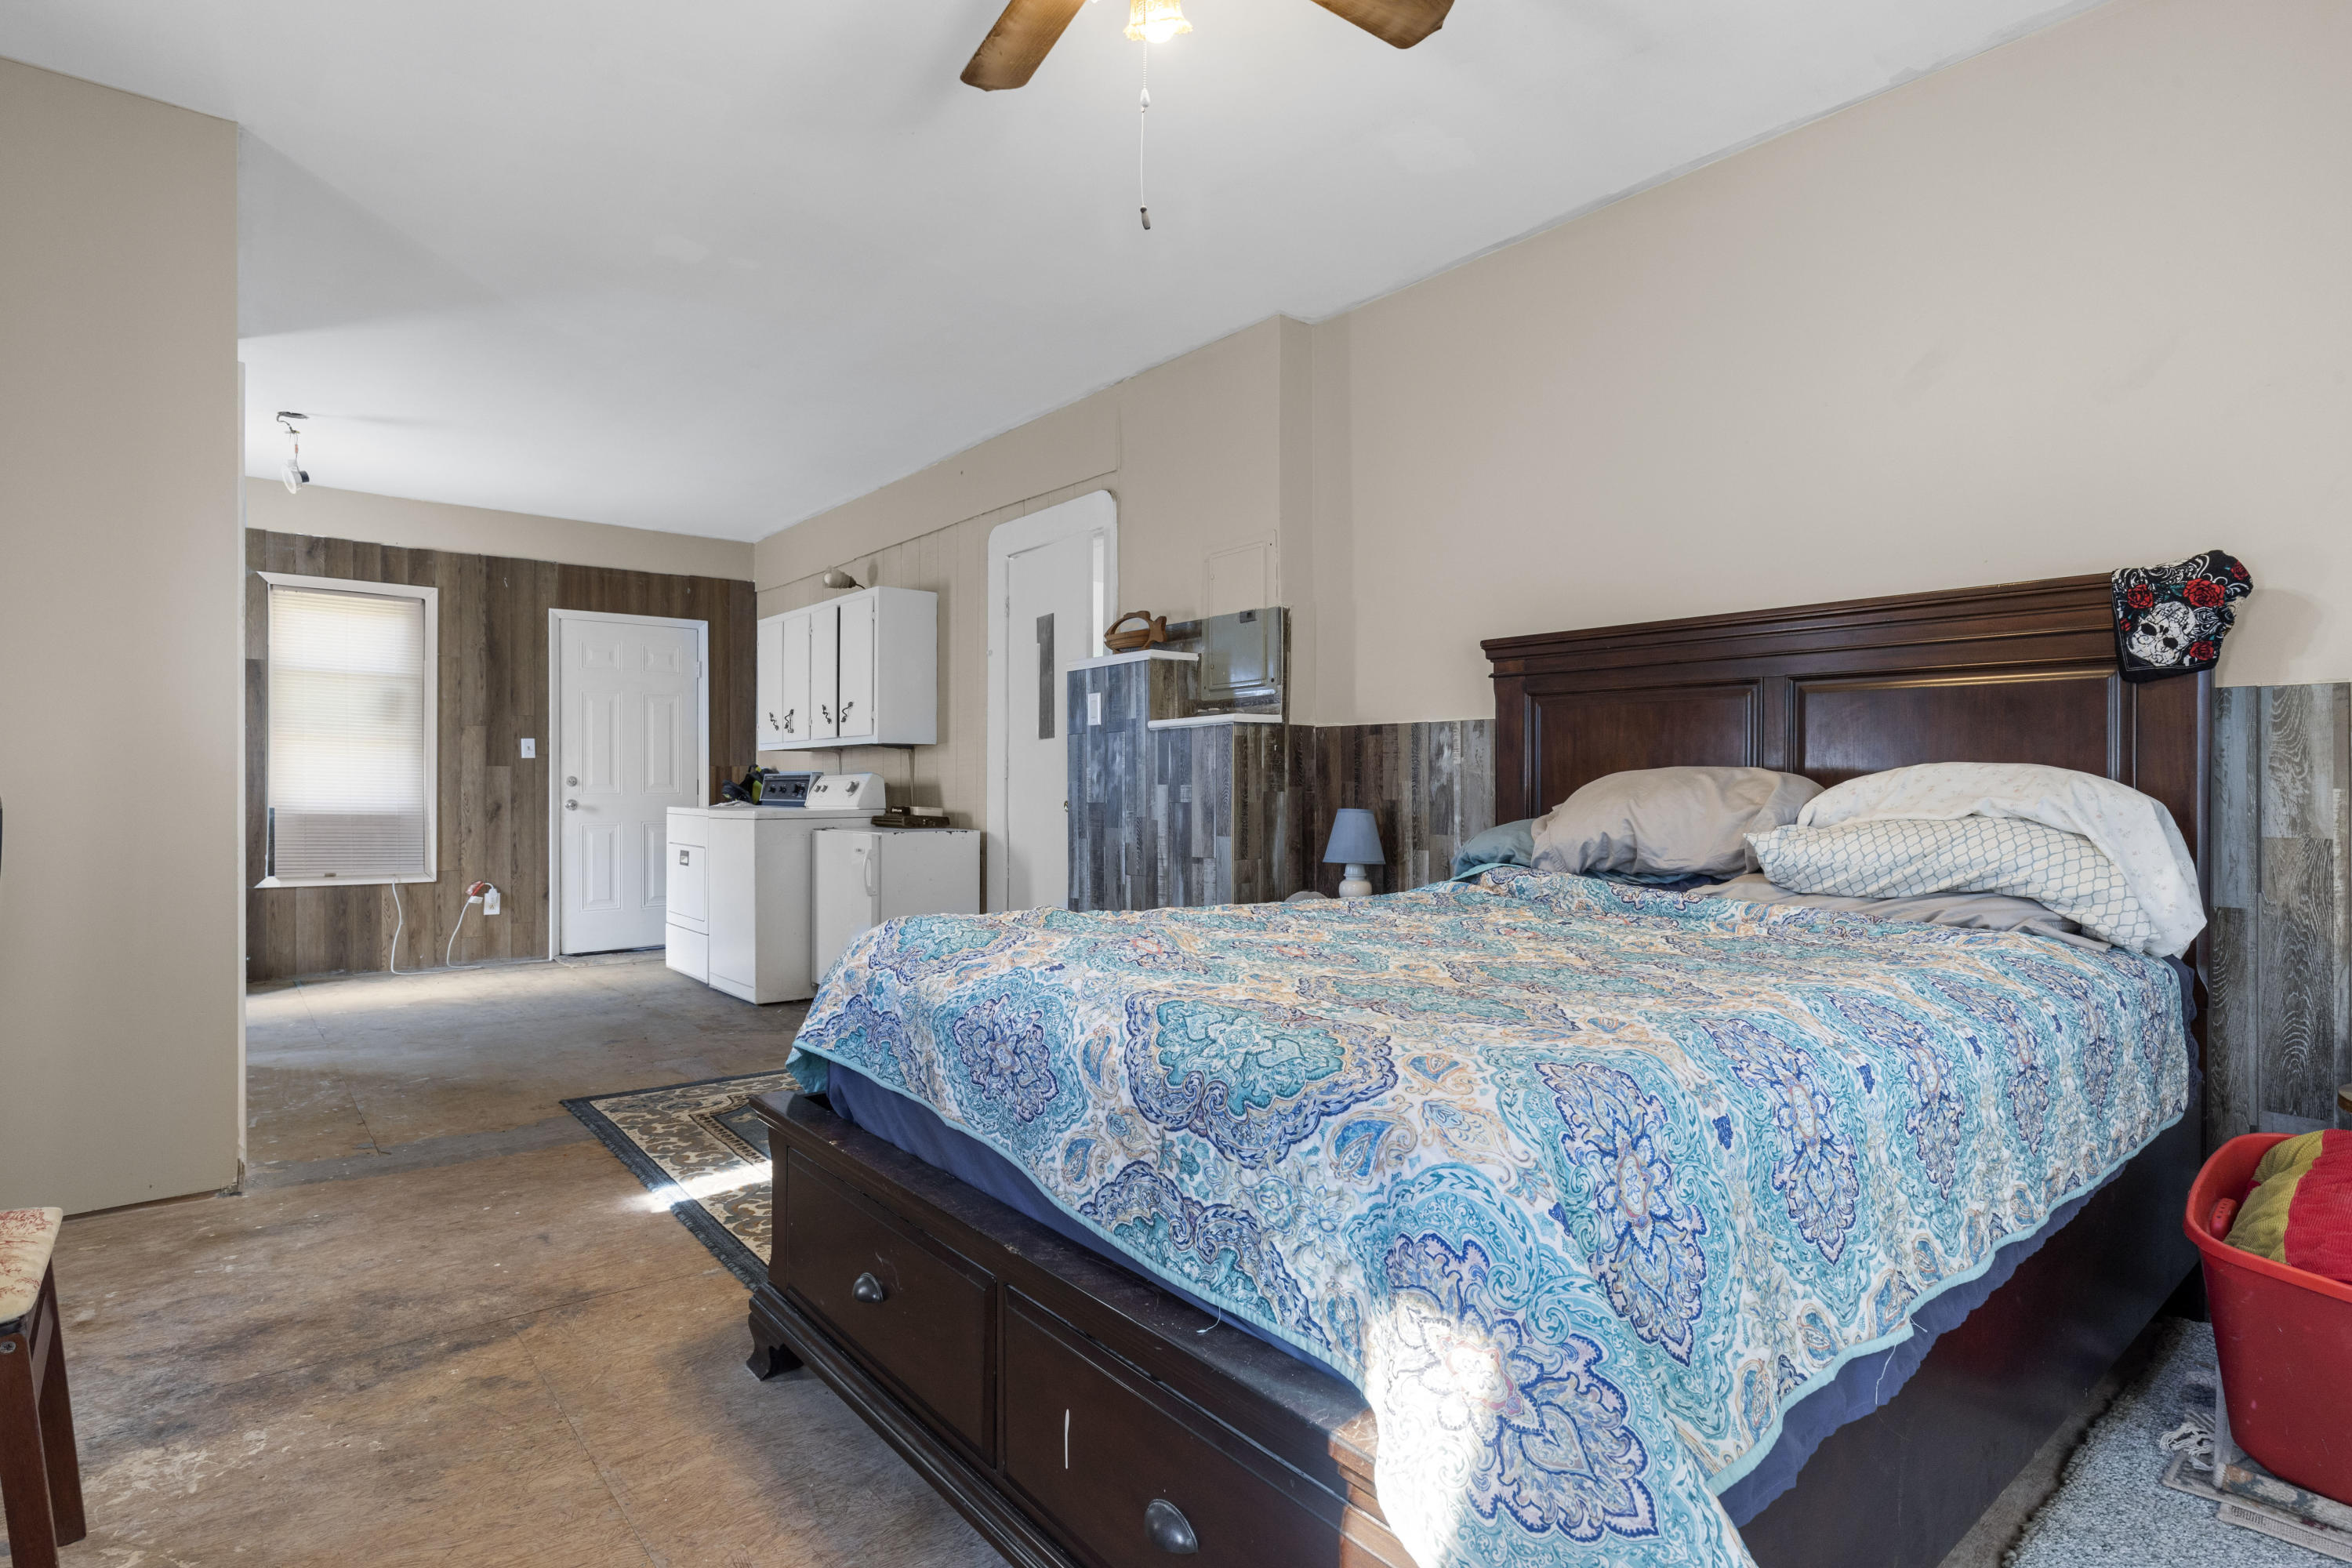 184 Pamlico Parkway, Beaufort, North Carolina 28516, 3 Bedrooms Bedrooms, 5 Rooms Rooms,1 BathroomBathrooms,Single family residence,For sale,Pamlico,100264389